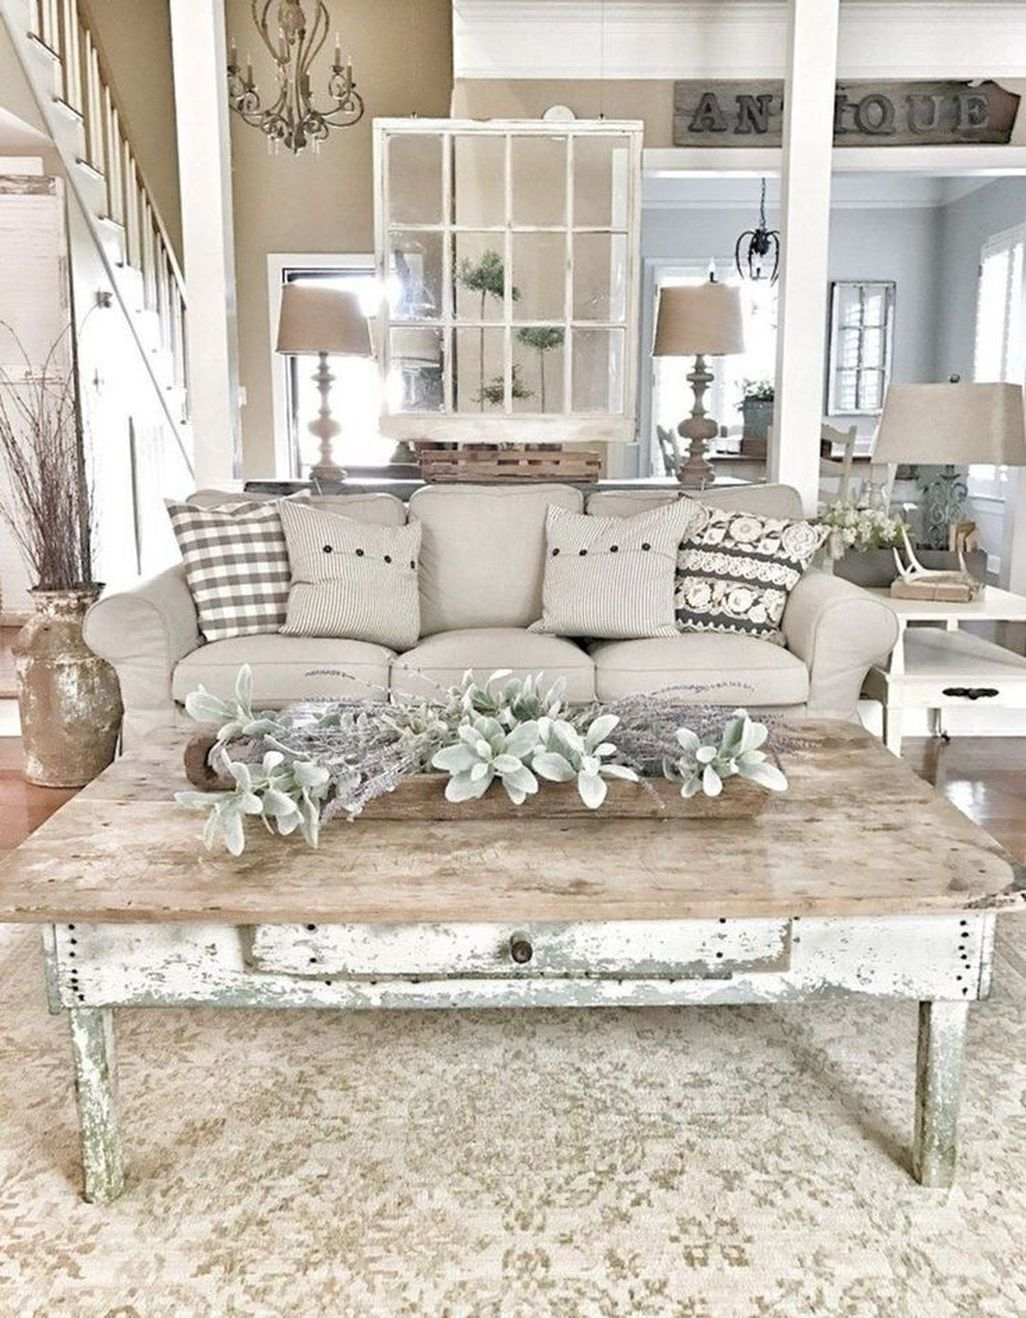 Farmhouse Chic Living Room Decor: 47 Amazing Rustic Farmhouse Living Room Decoration Ideas